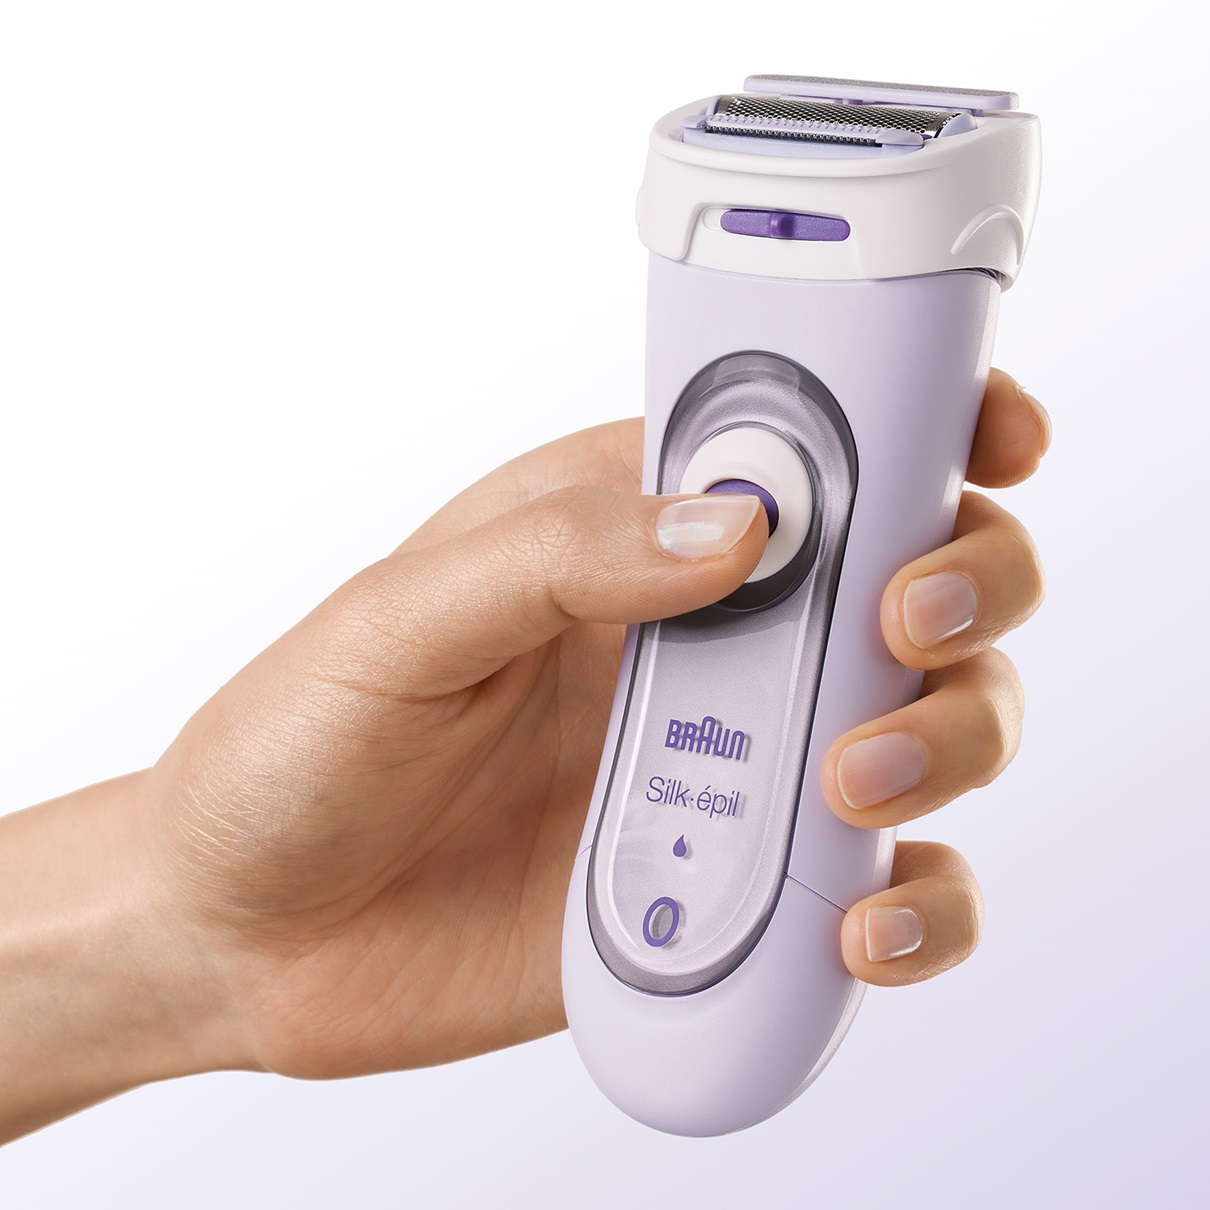 Braun Lady Shaver - 5560 Cordless Electric Shaver - in hand